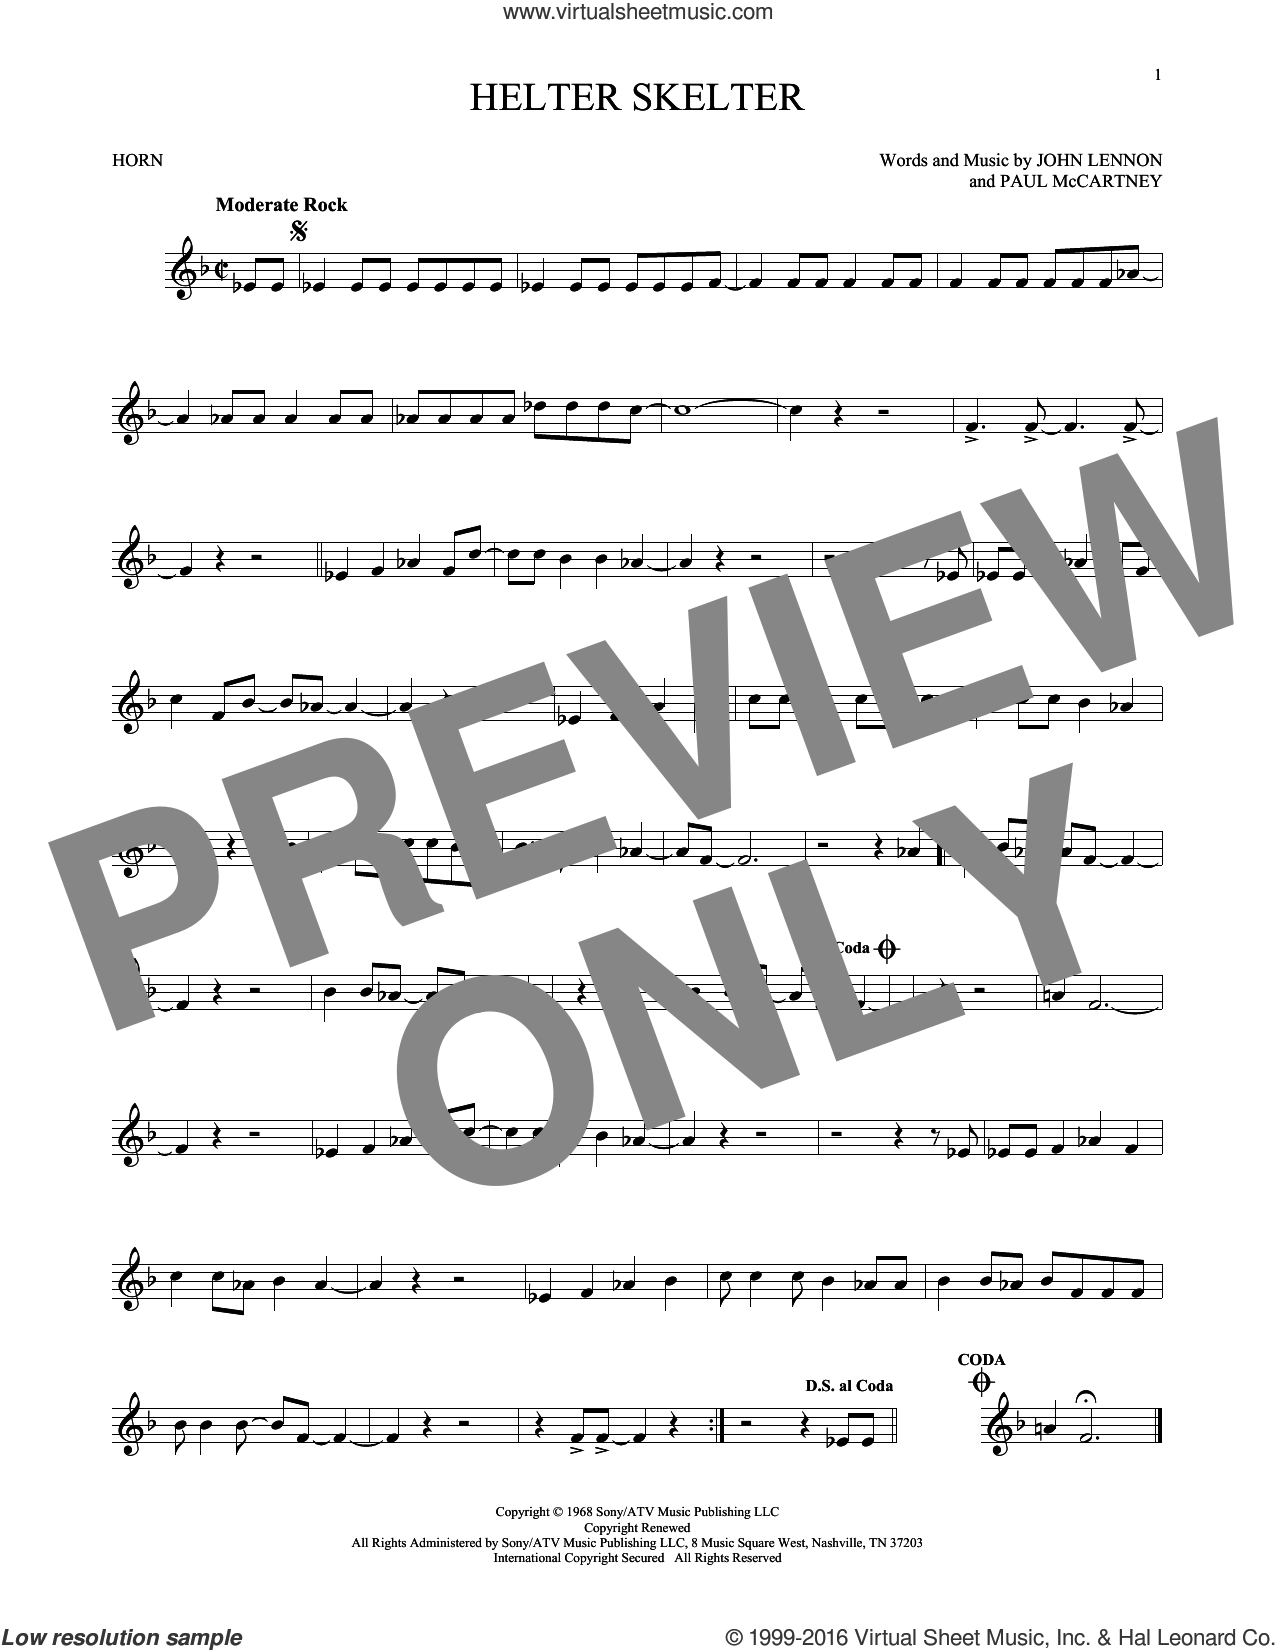 Helter Skelter sheet music for horn solo by The Beatles, John Lennon and Paul McCartney, intermediate